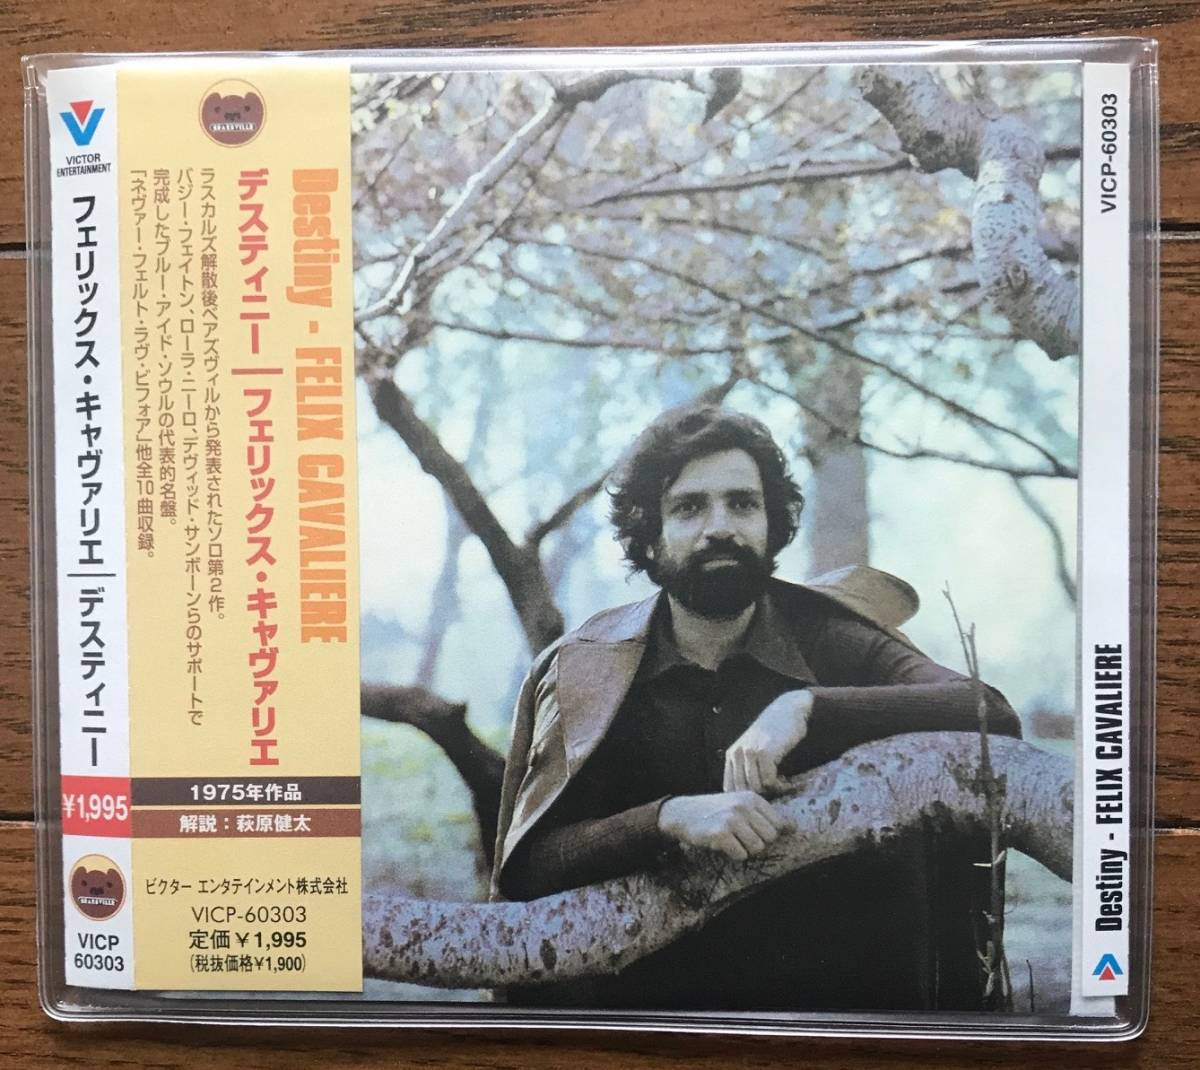 272 / FELIX CAVALIERE / Destiny / フェリックス・キャヴァリエ / The Young Rascals / 国内盤 / とてもきれい_画像1